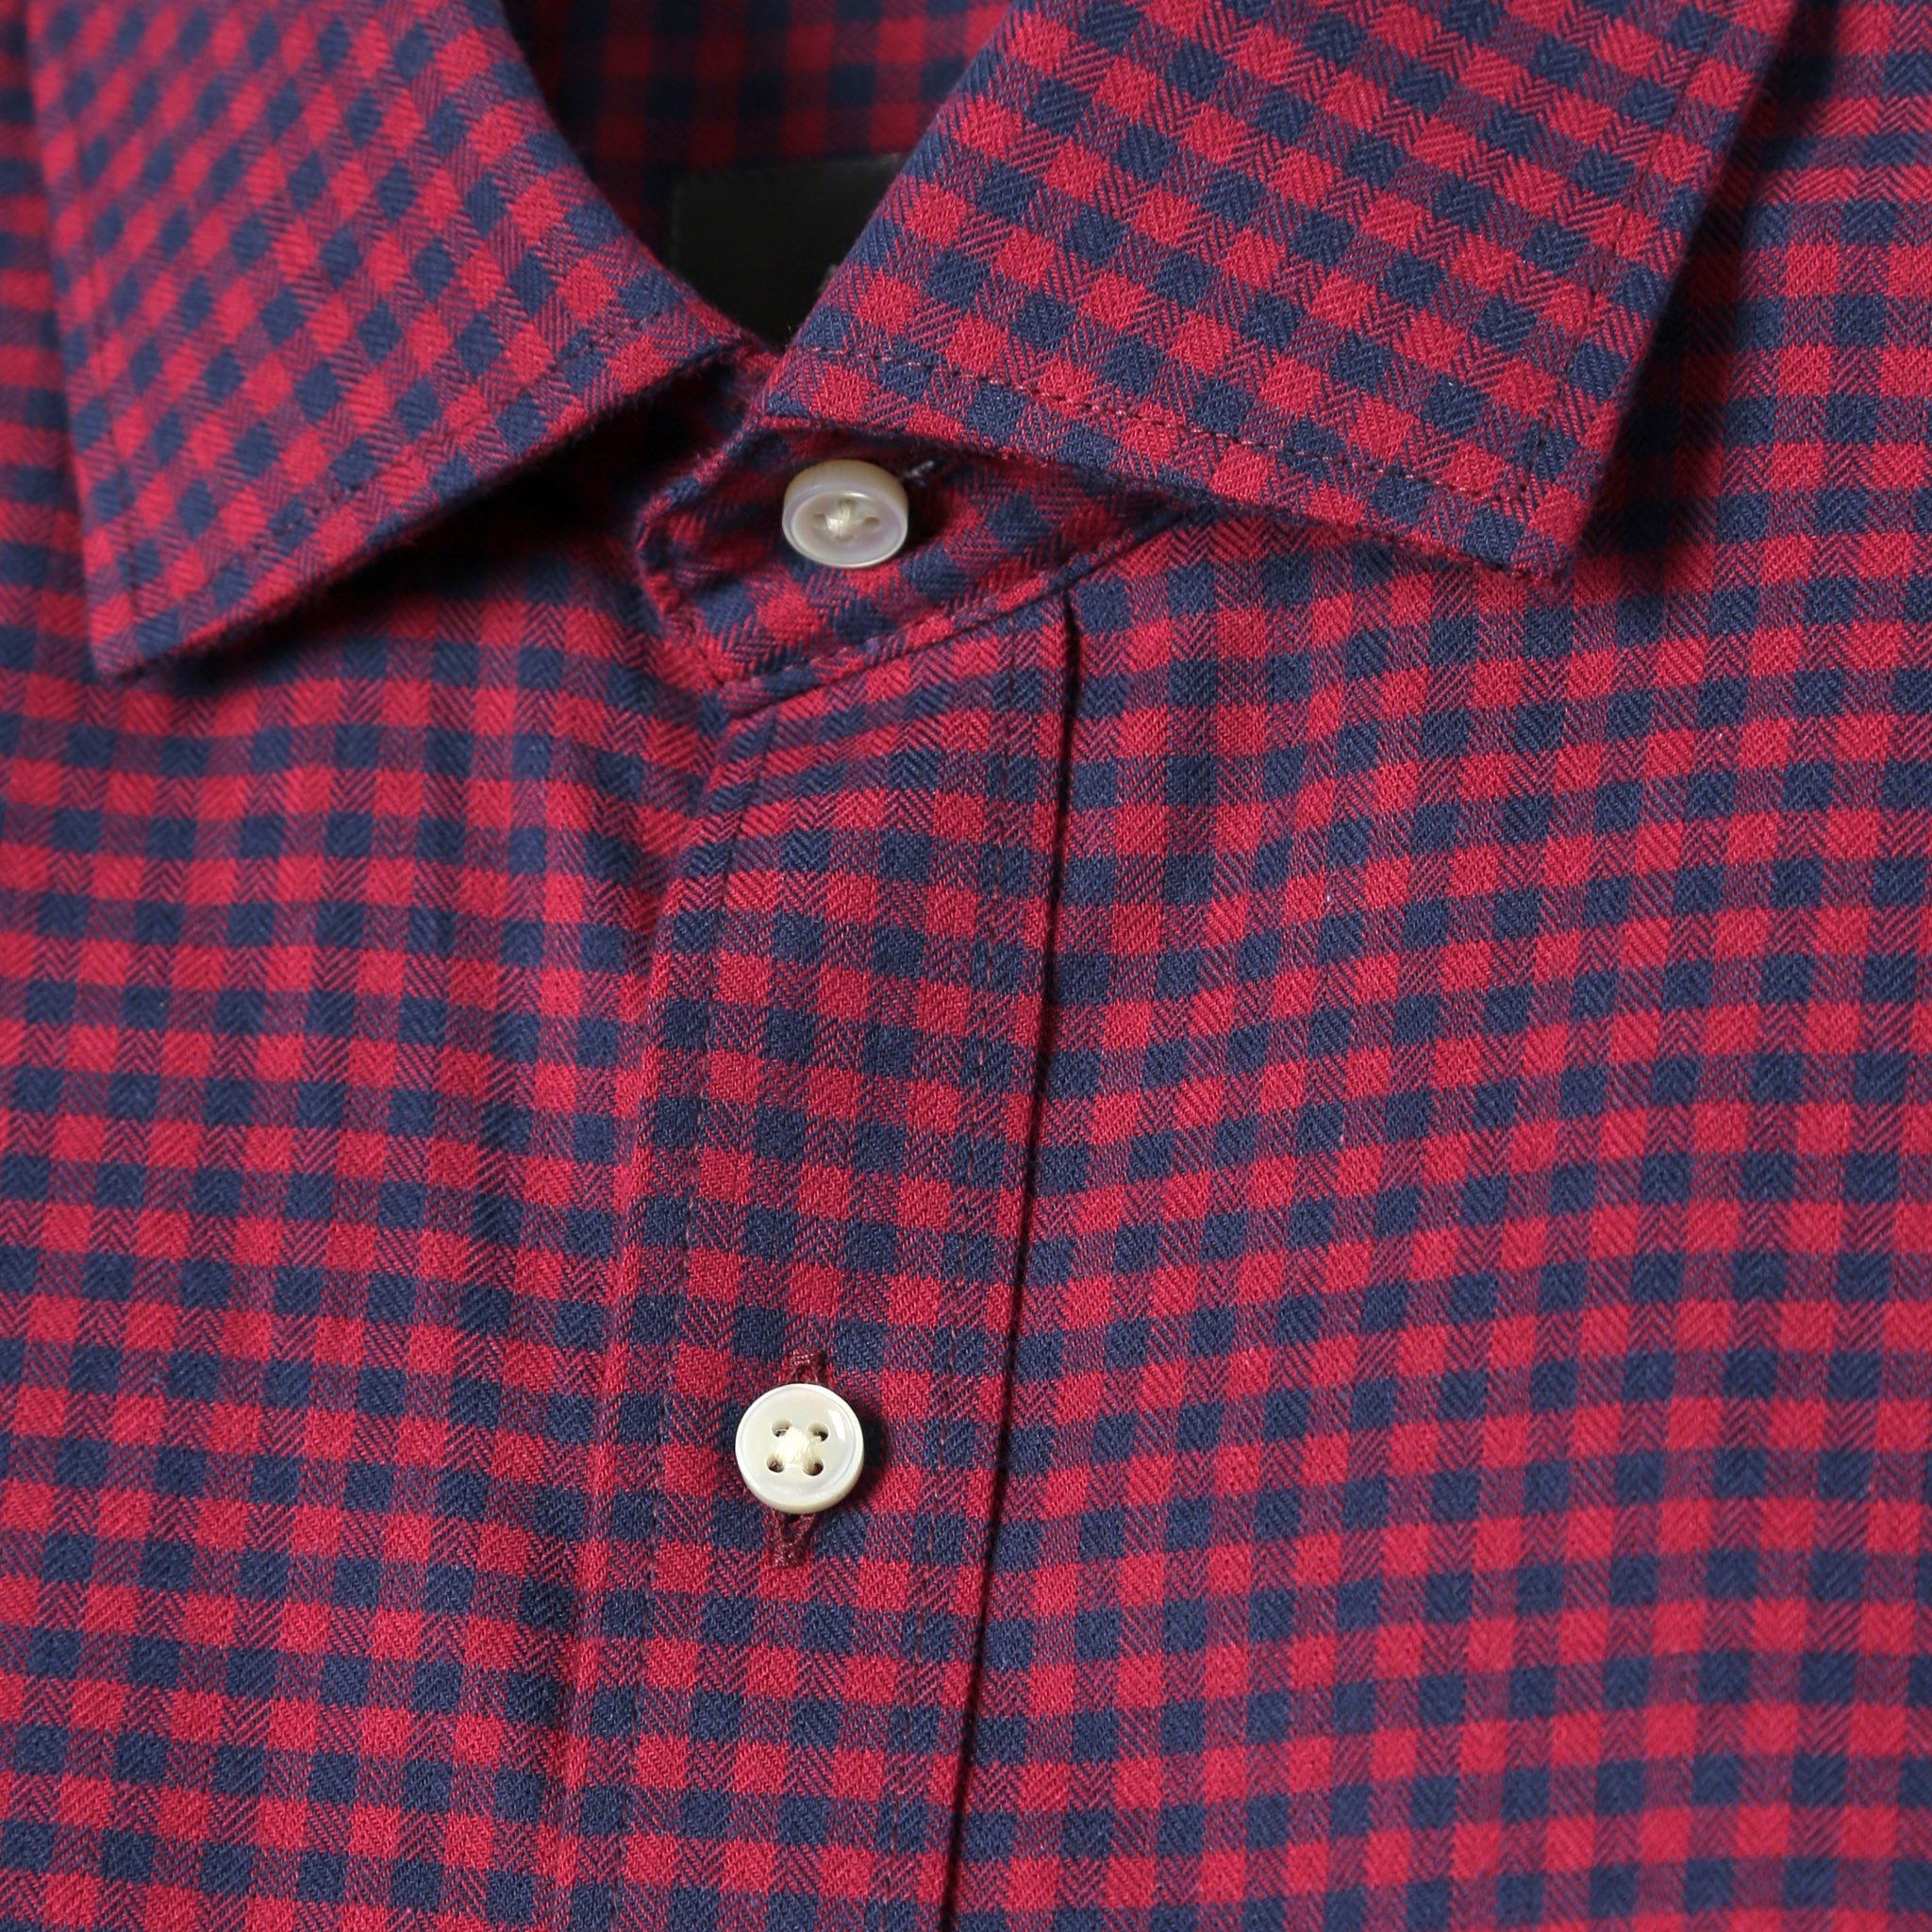 Howard Everyday Flannel in Red Gingham